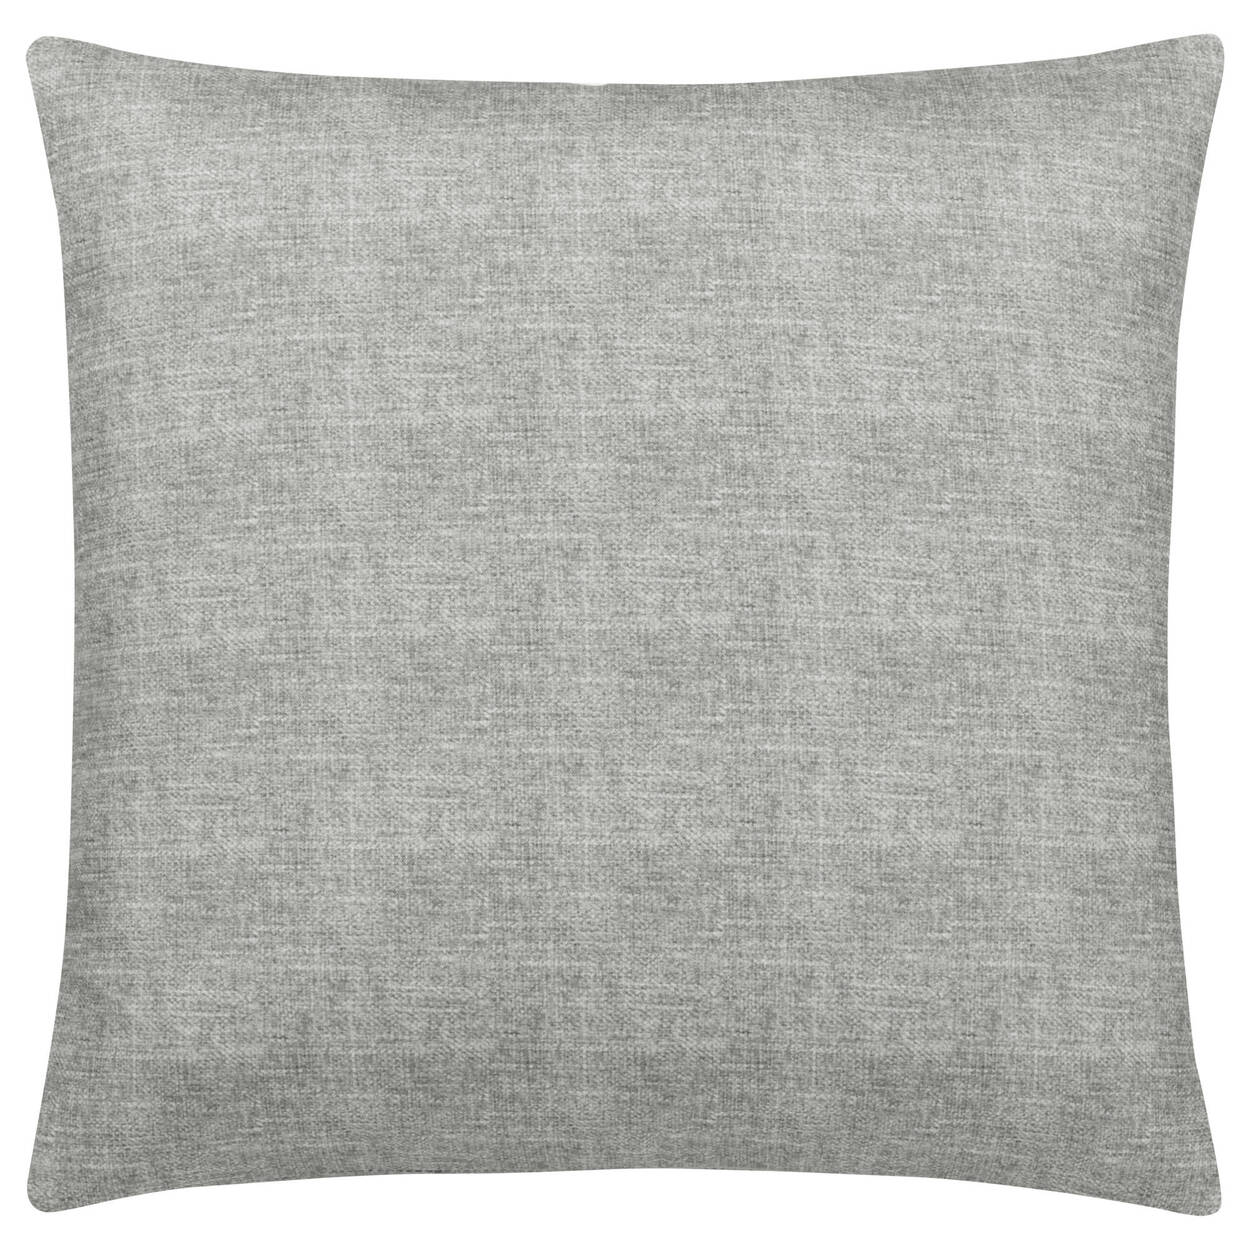 "Patate Decorative Pillow Cover 18"" X 18"""